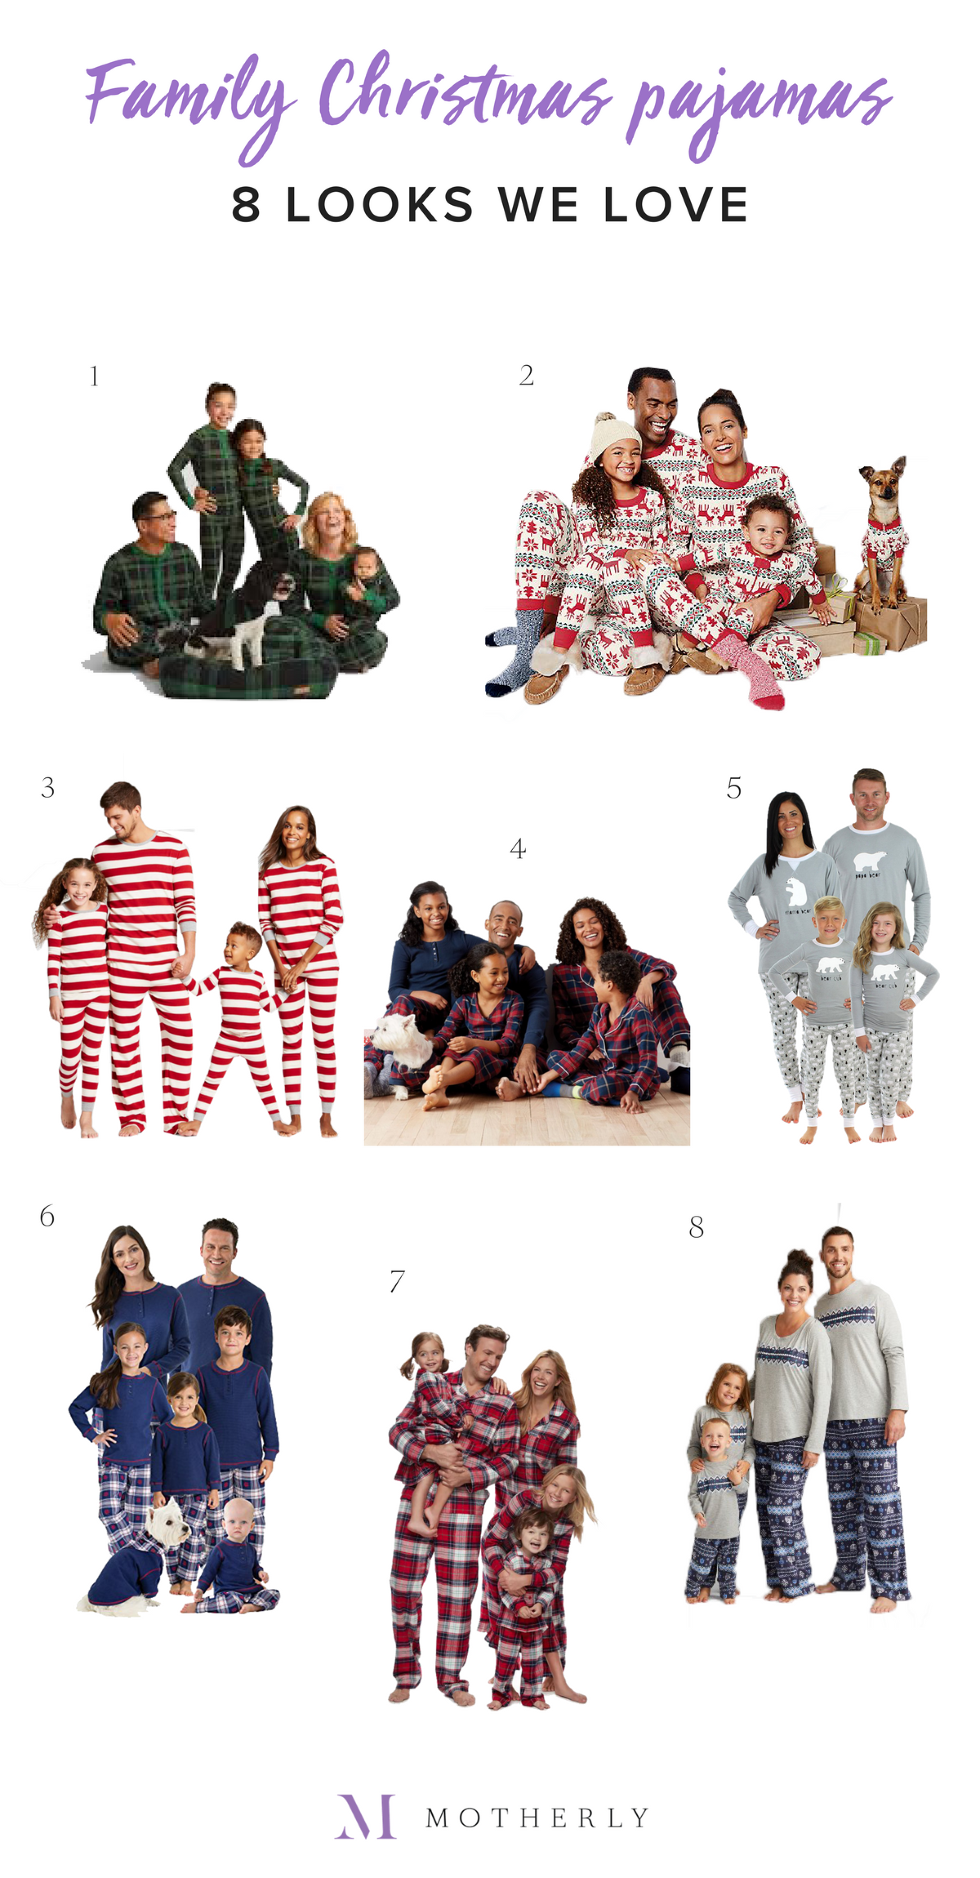 Matching family pajamas: 8 looks we love - Motherly